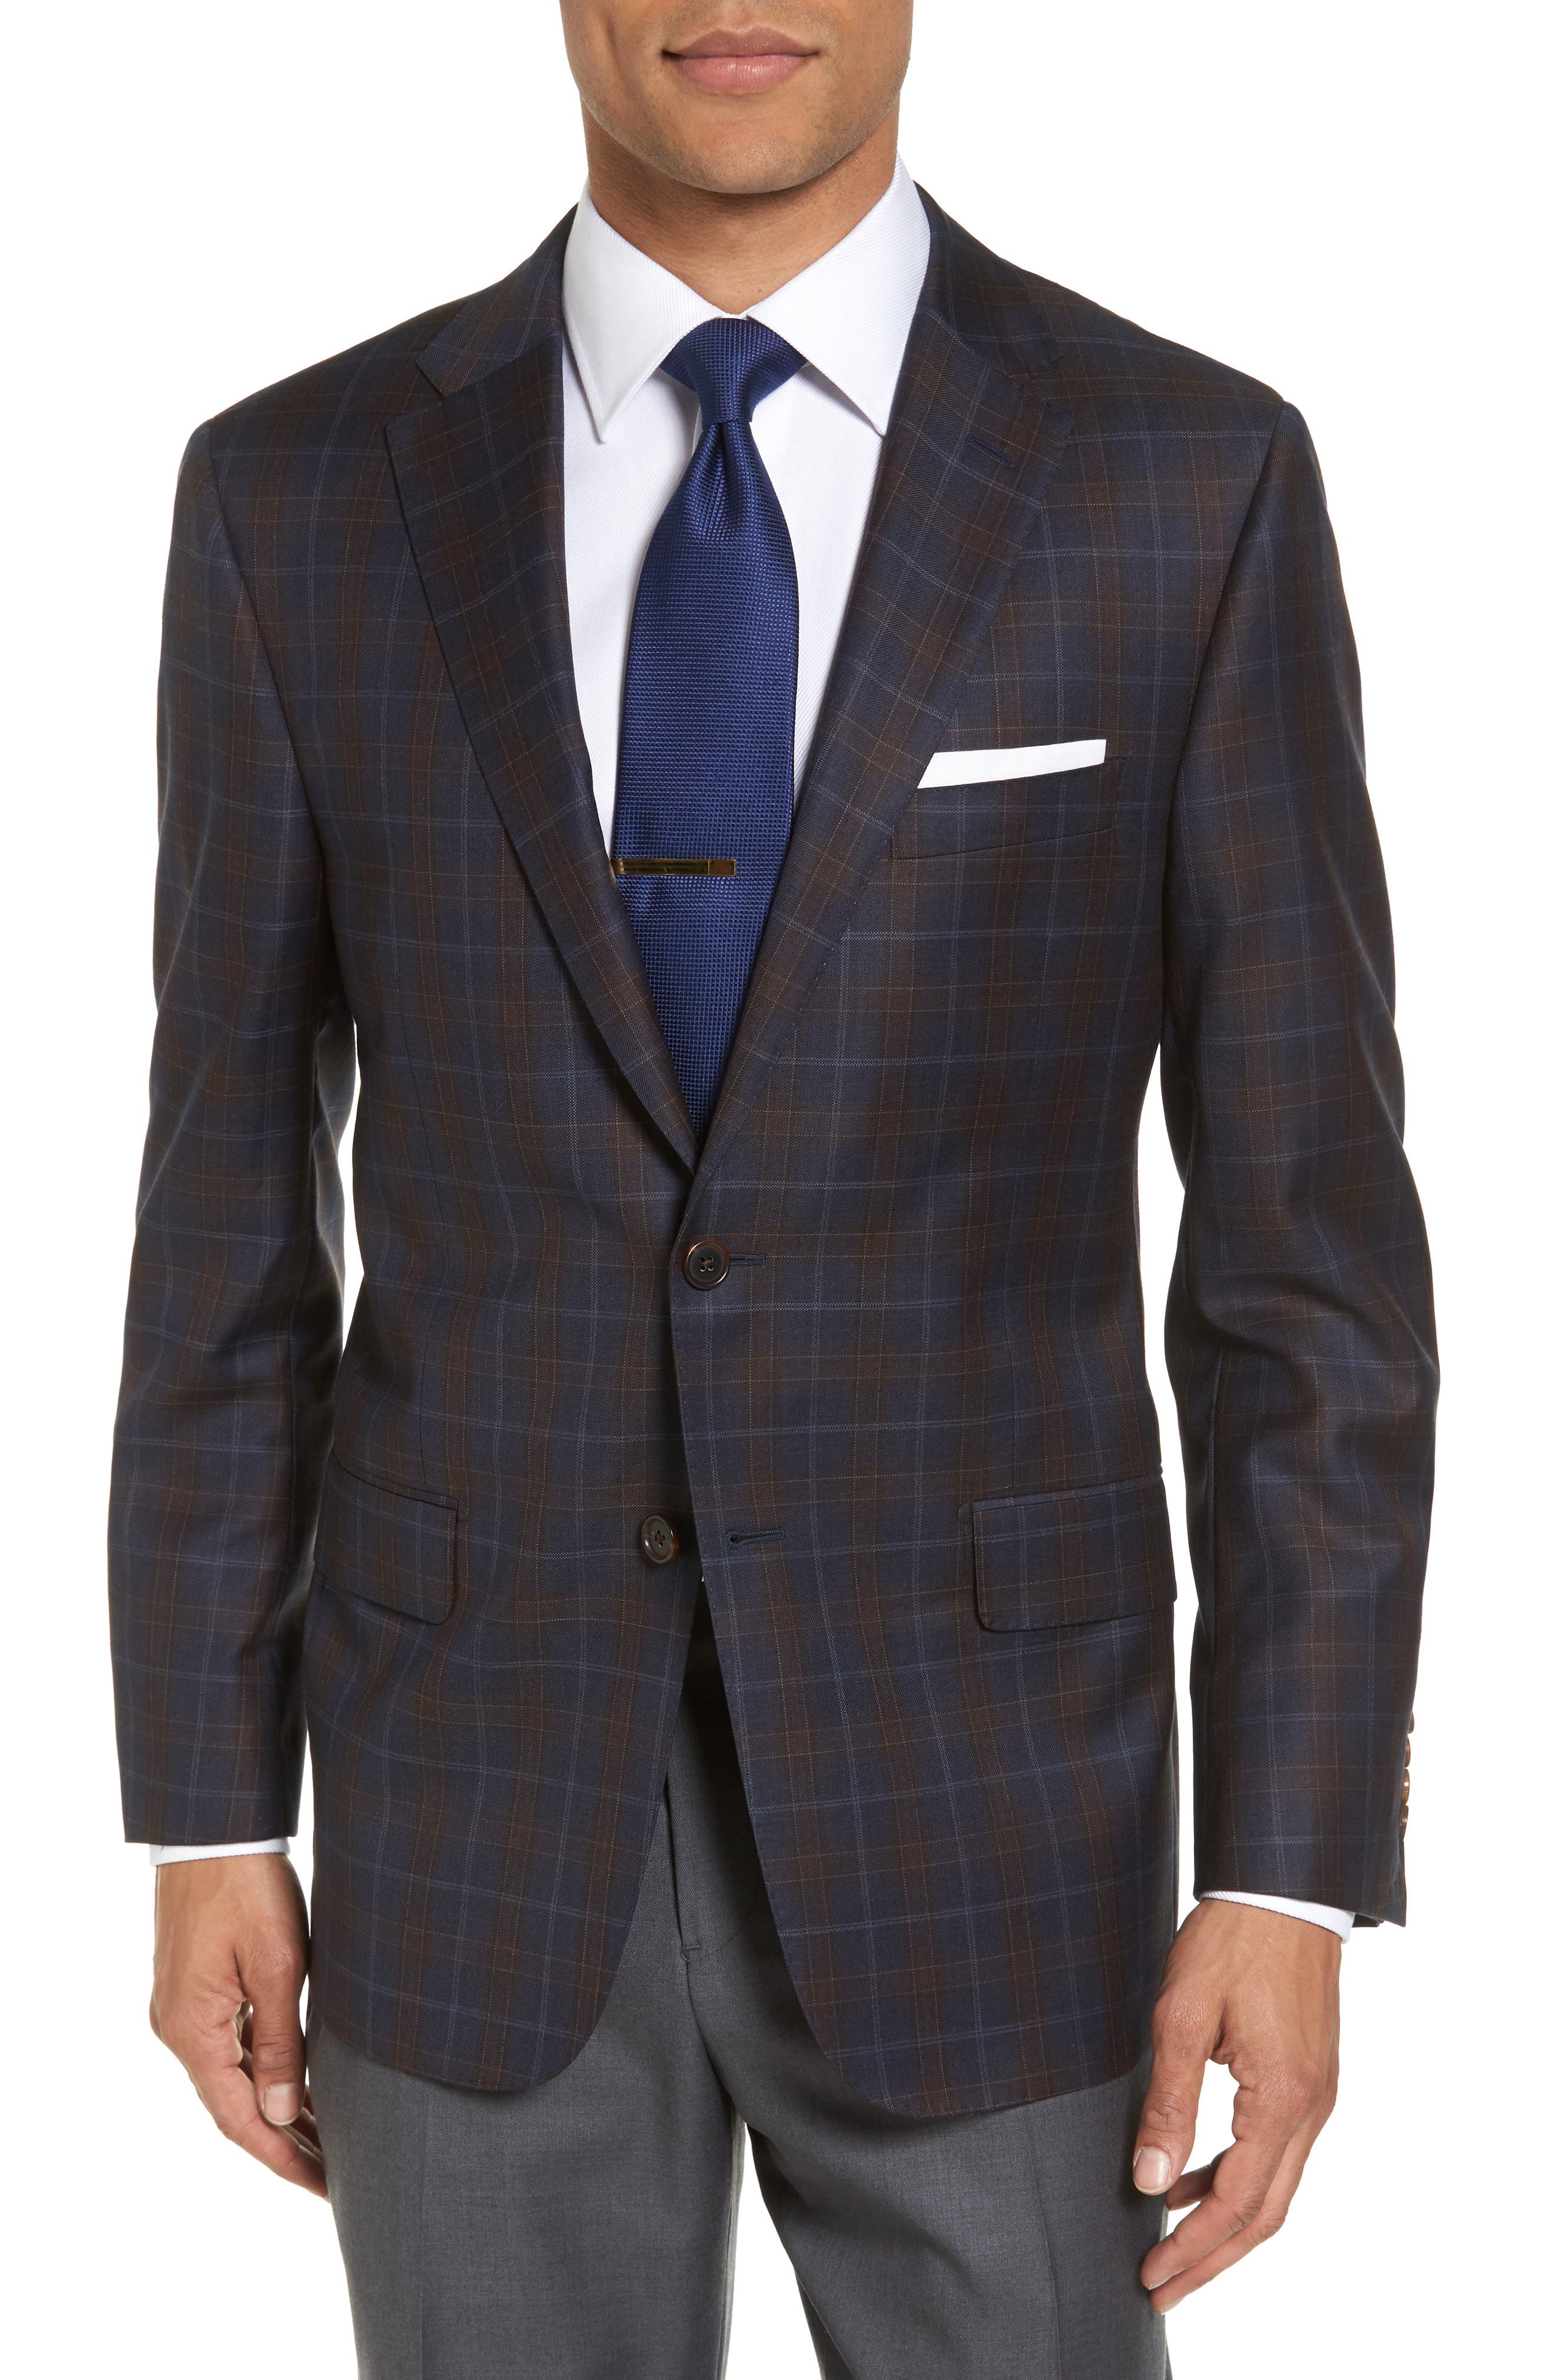 Hickey Freeman B-Series Classic Fit Plaid Wool Sport Coat